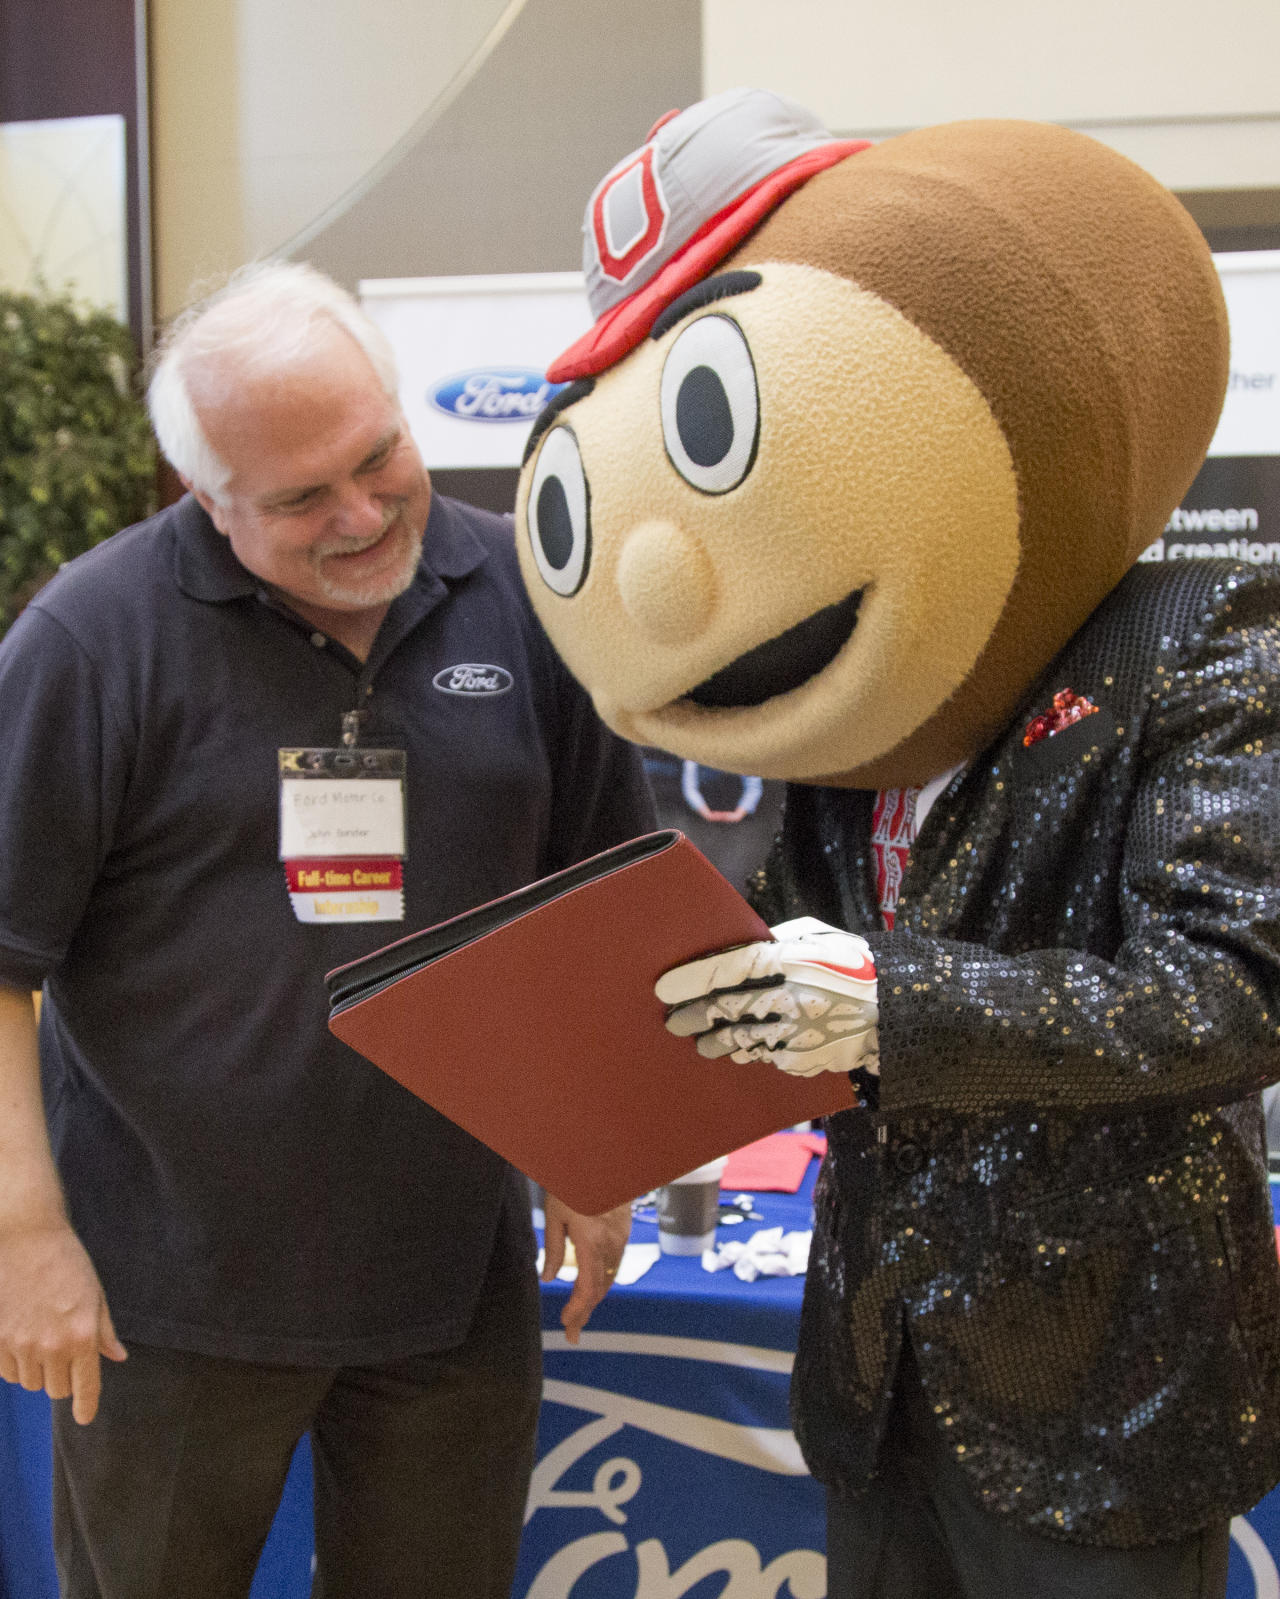 Brutus sharing his resume with an employer